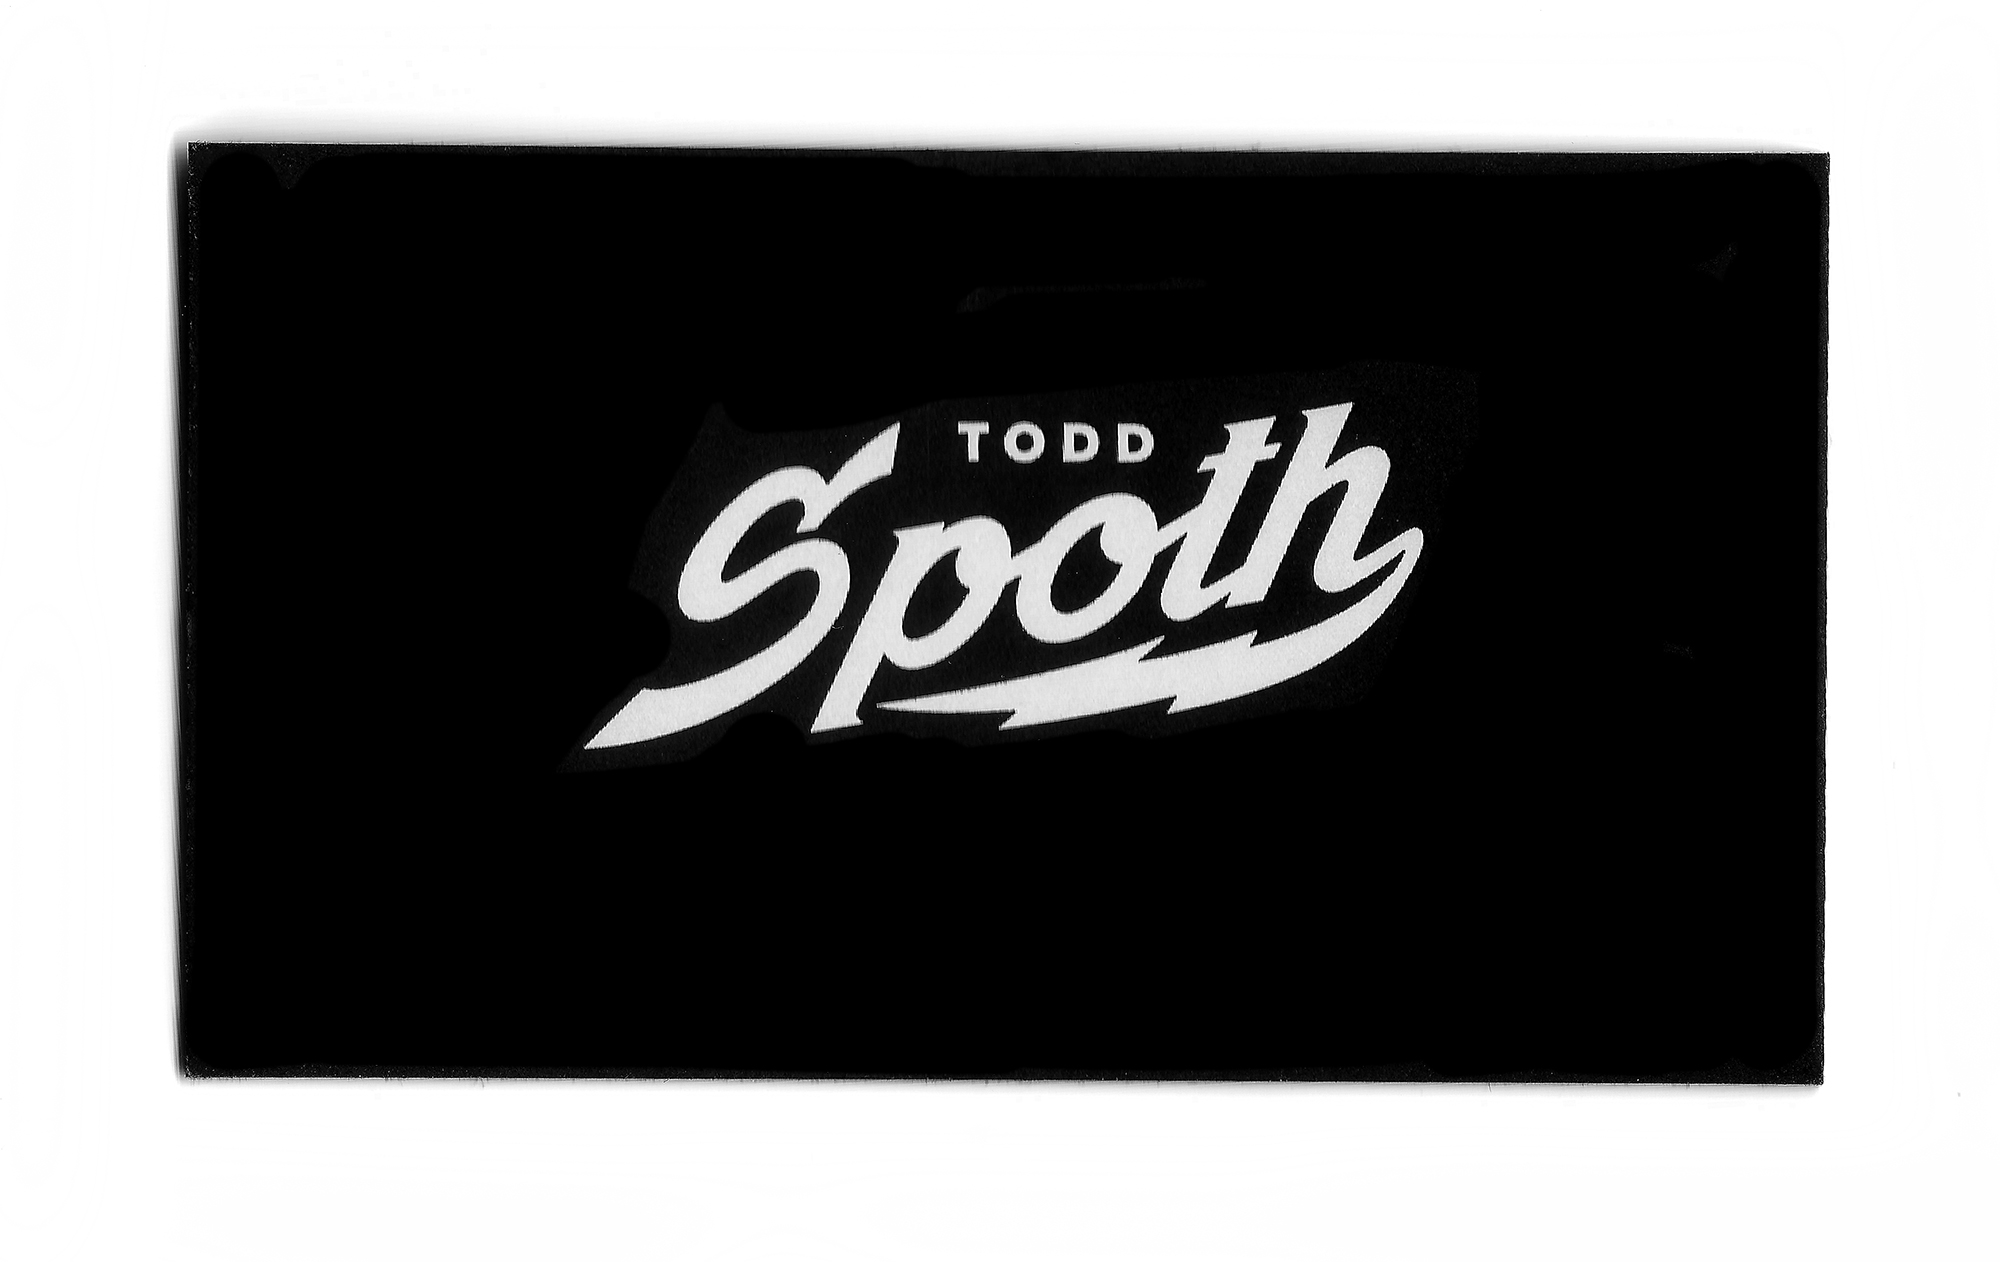 TODD SPOTH BUSINESS CARD (2014)